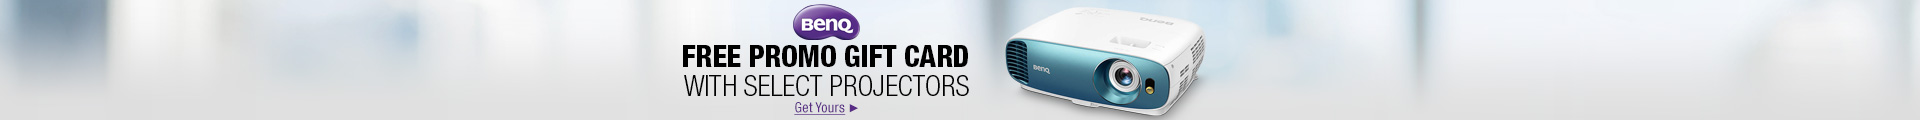 FREE PROMO GIFT CARD WITH SELECT PROJECTORS